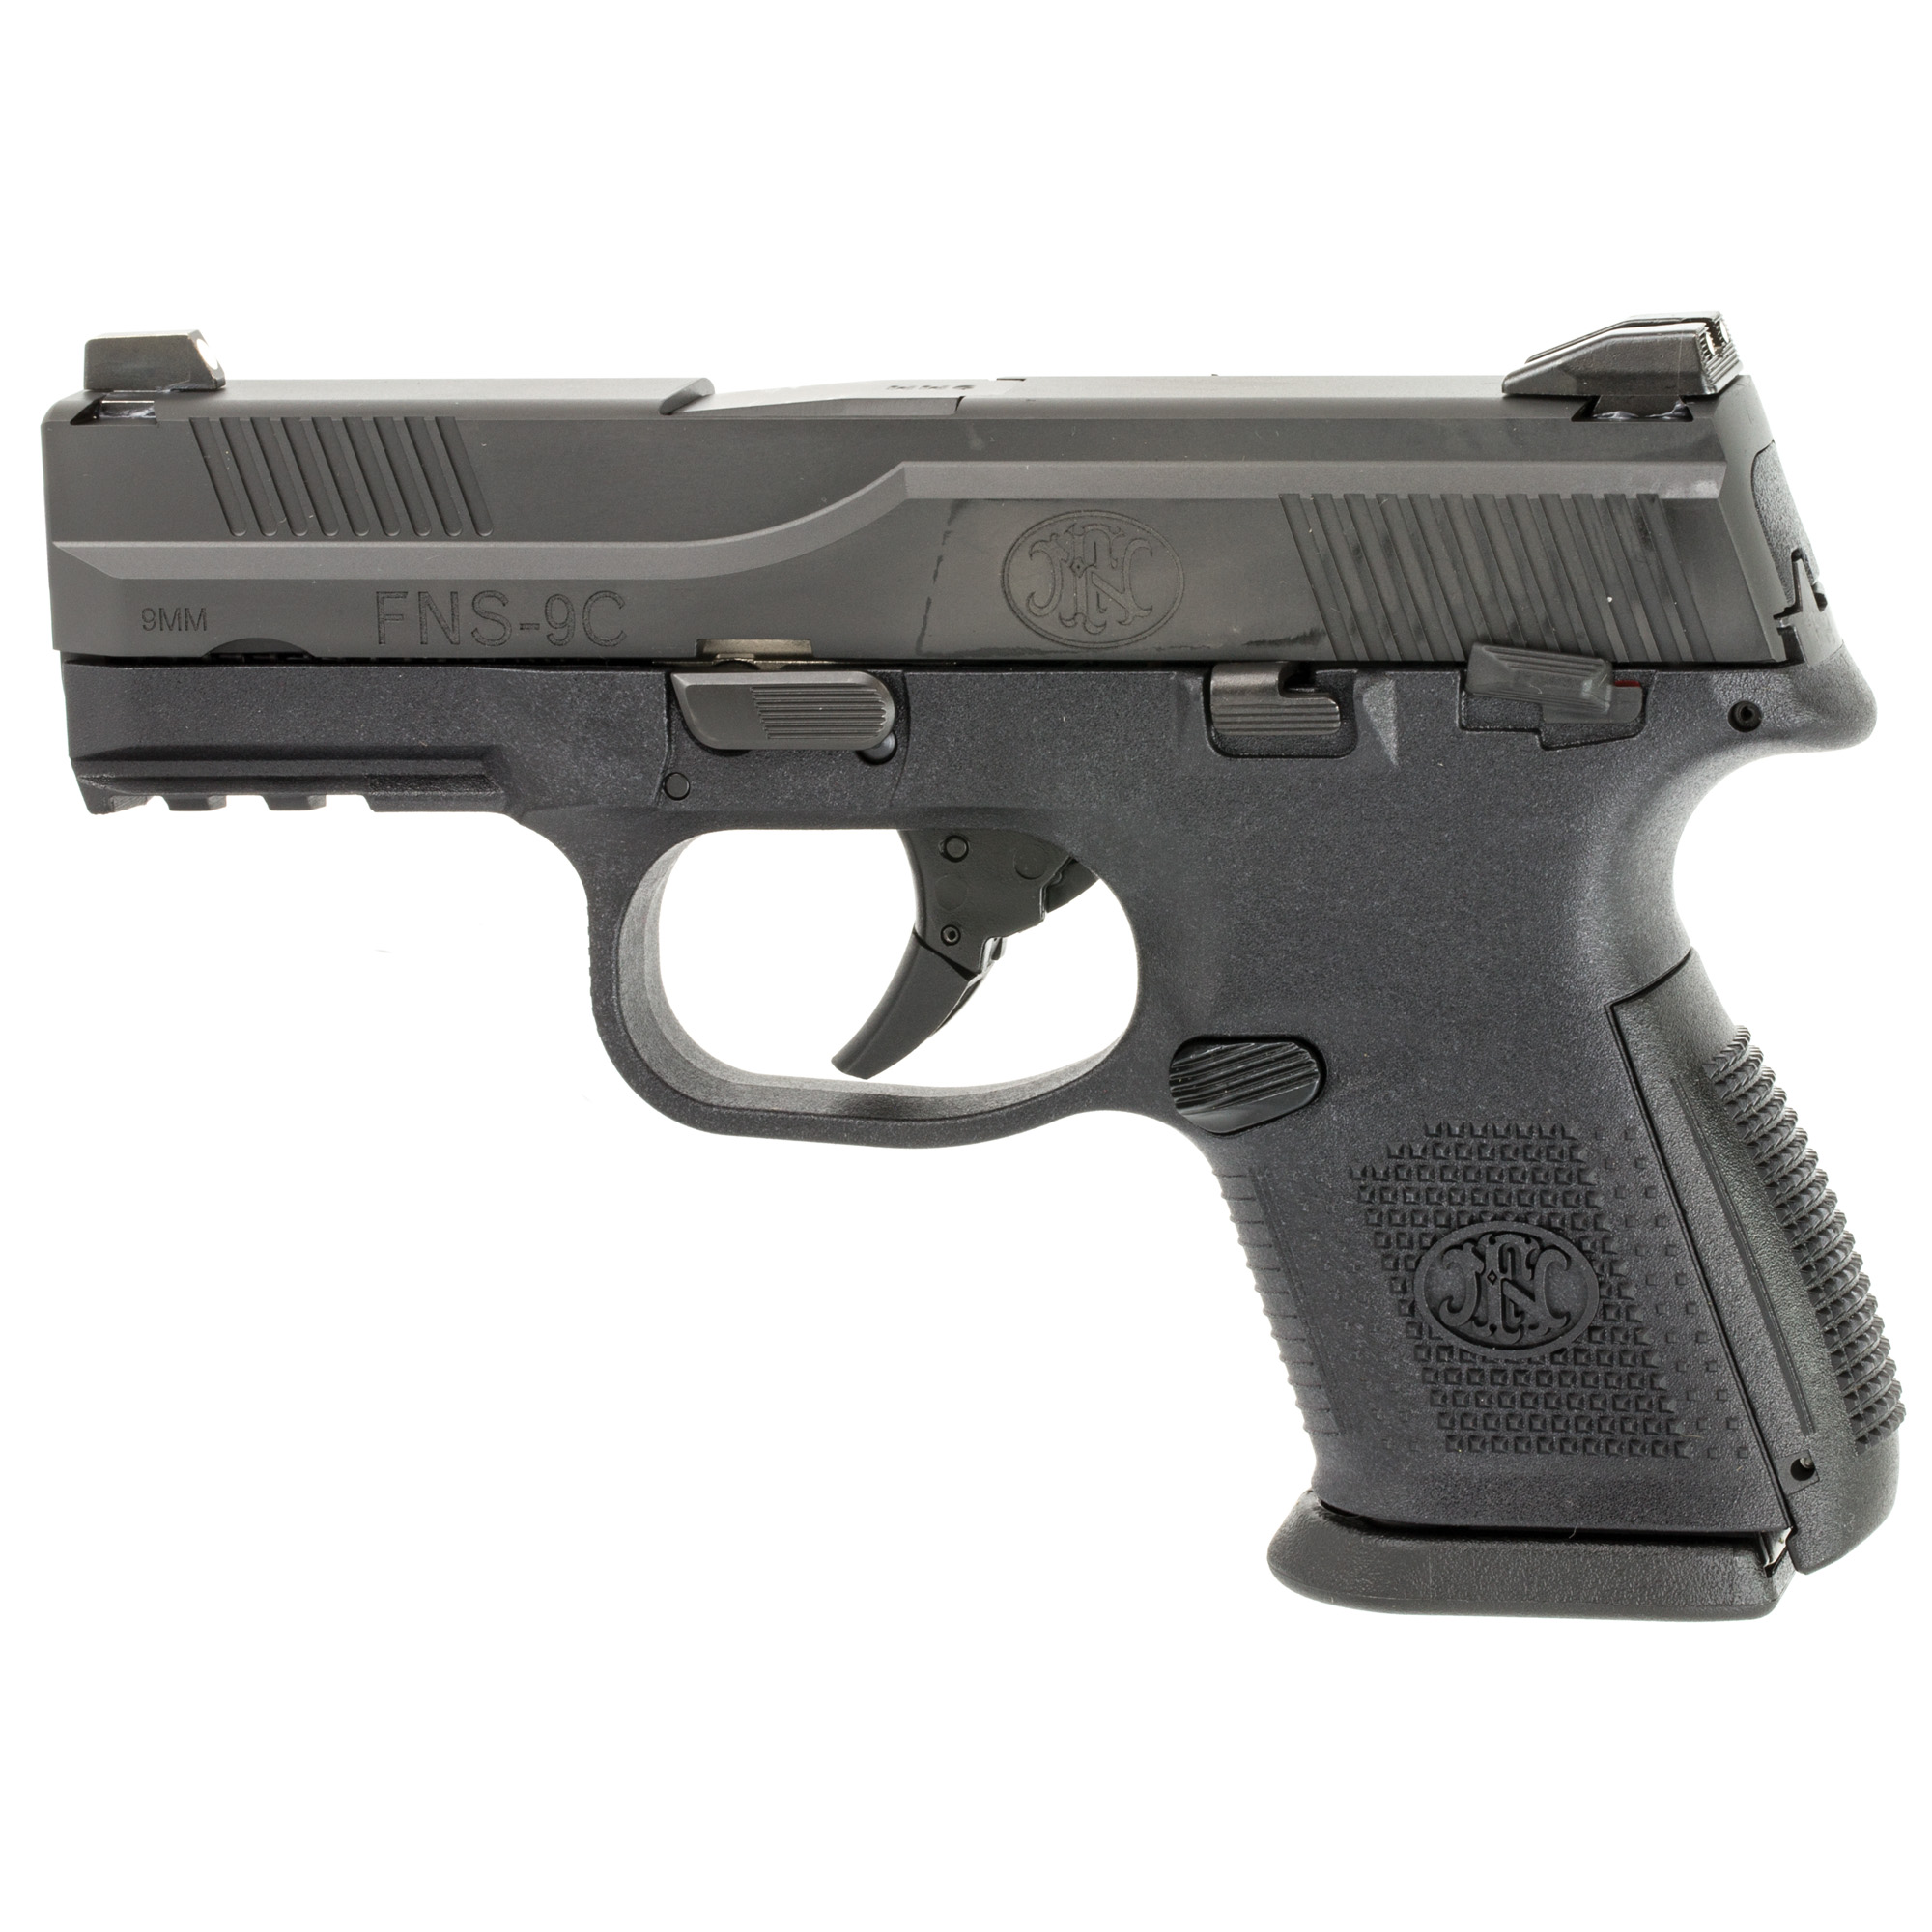 """The FNS(TM)-9 Compact offers the same features as the standard models but has a 3.6"""" barrel and is designed to be snag-free for better concealment and a faster draw. The front sight also has a larger dot for faster target acquisition."""